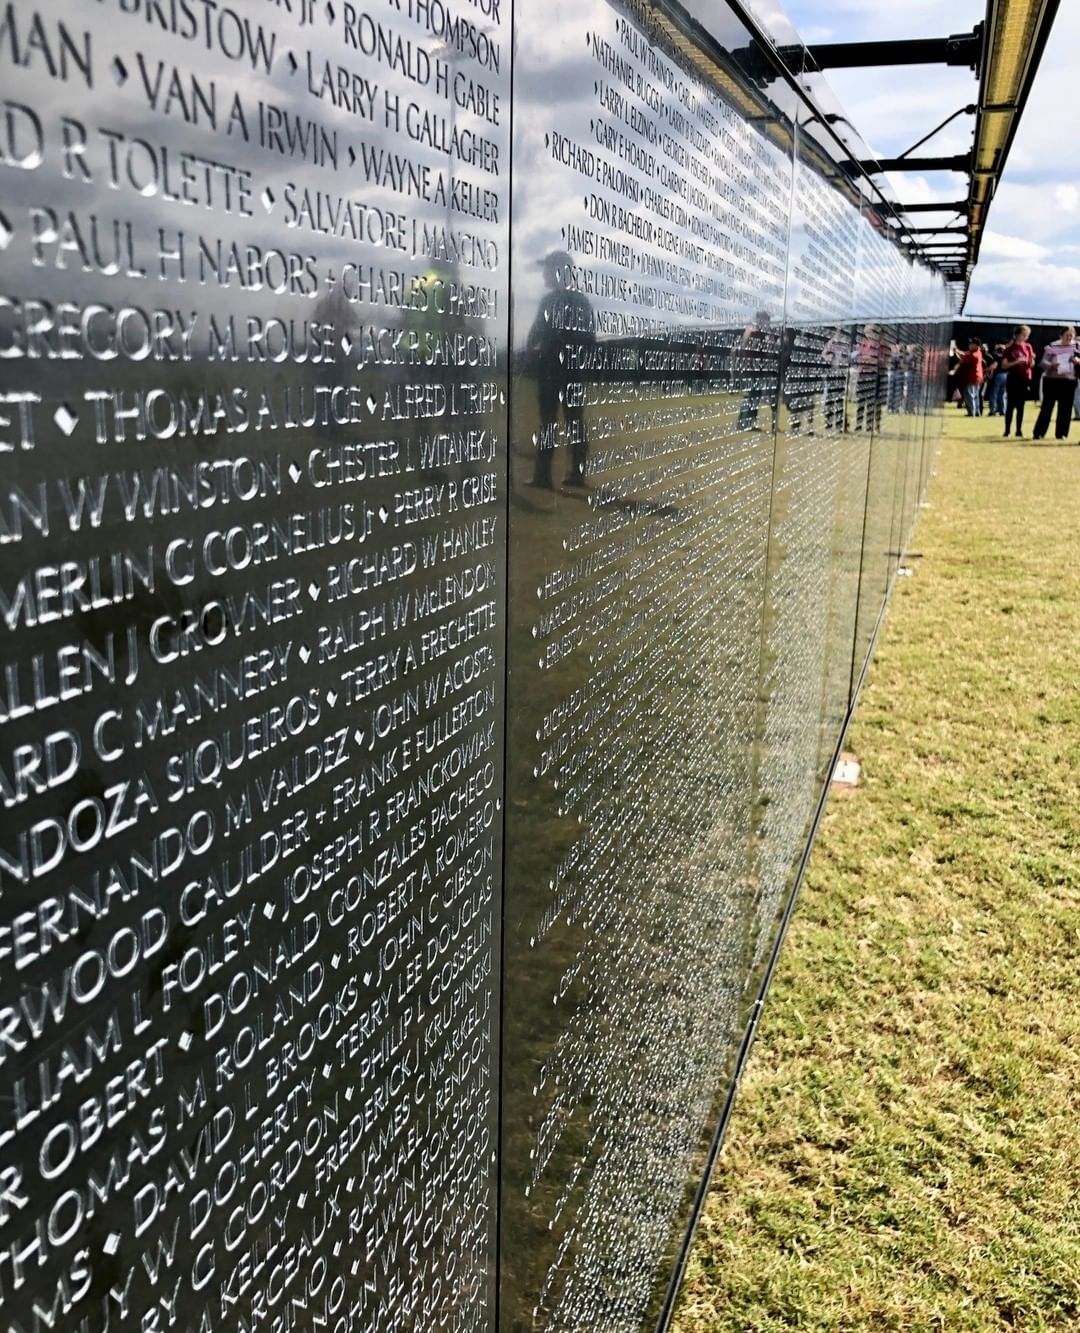 The Wall that Heals, a traveling Vietnam Veterans Memorial wall, is in Rock Hill until Sunday at 2PM. The wall contains the names of the 58,276 members of the military members that died while in Vietnam